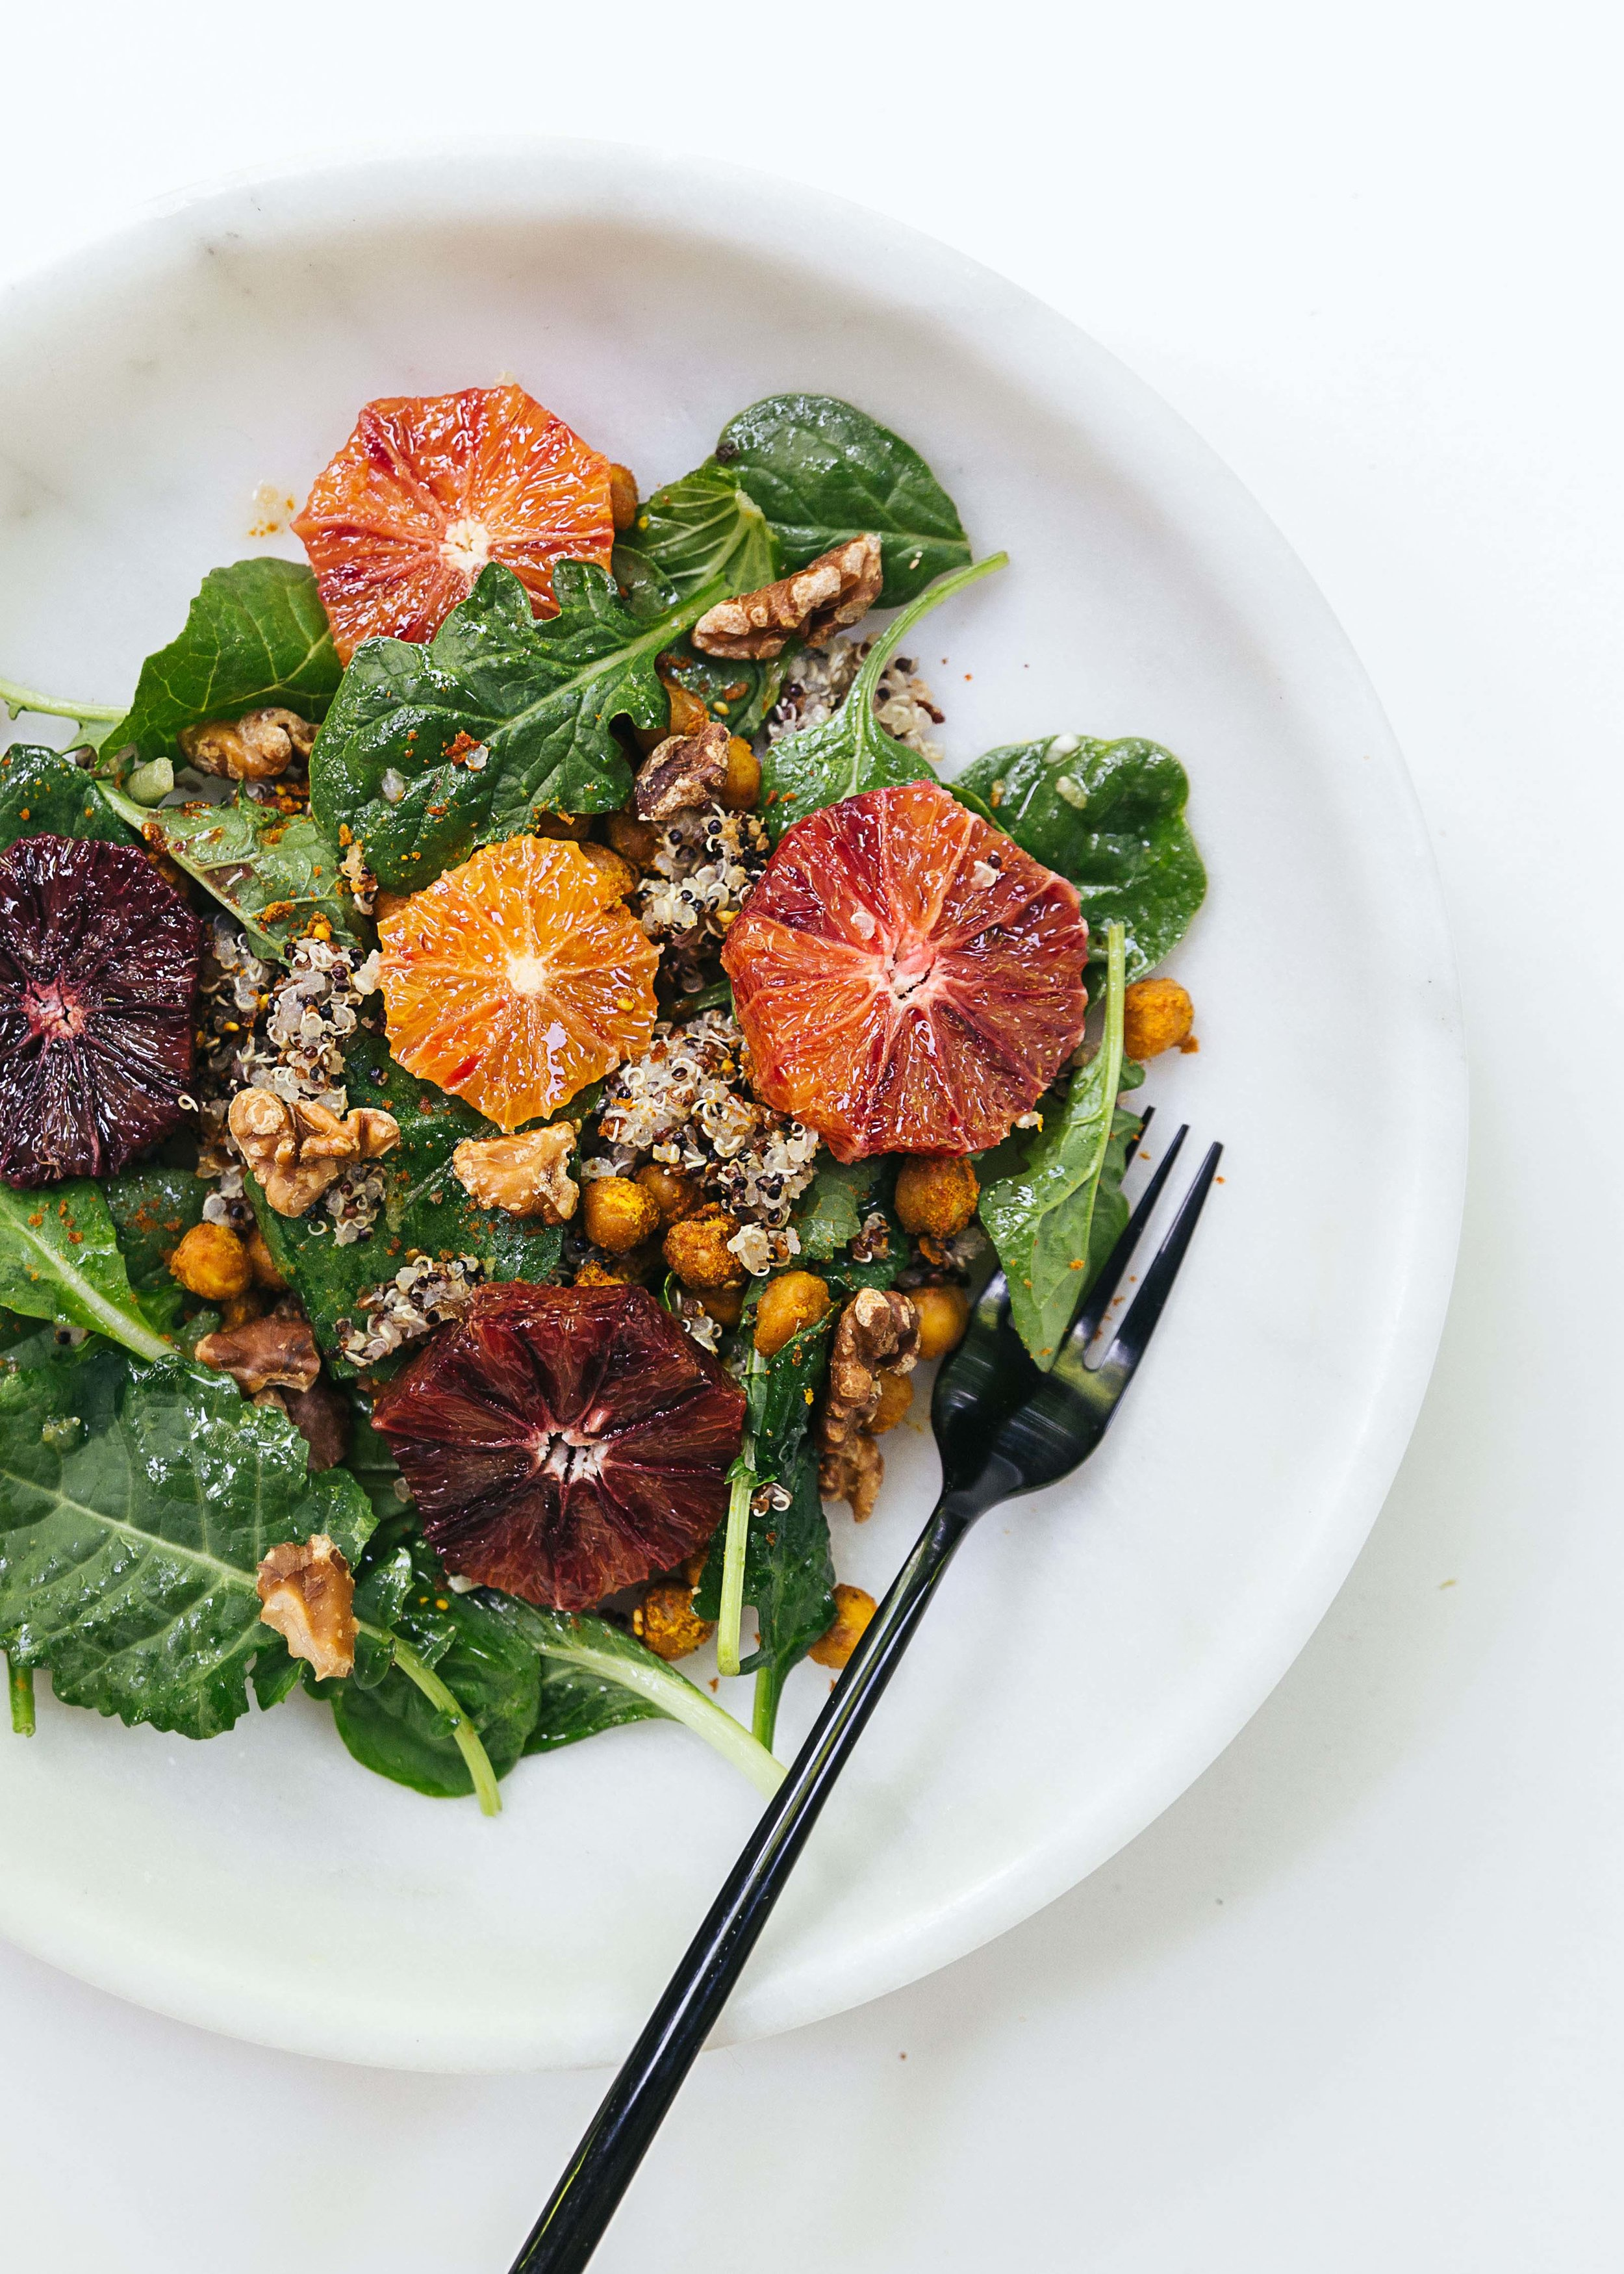 my vancouver salad: quinoa, roasted chickpeas, baby spinach, walnuts, blood orange. lemon juice, zest and olive oil dressing